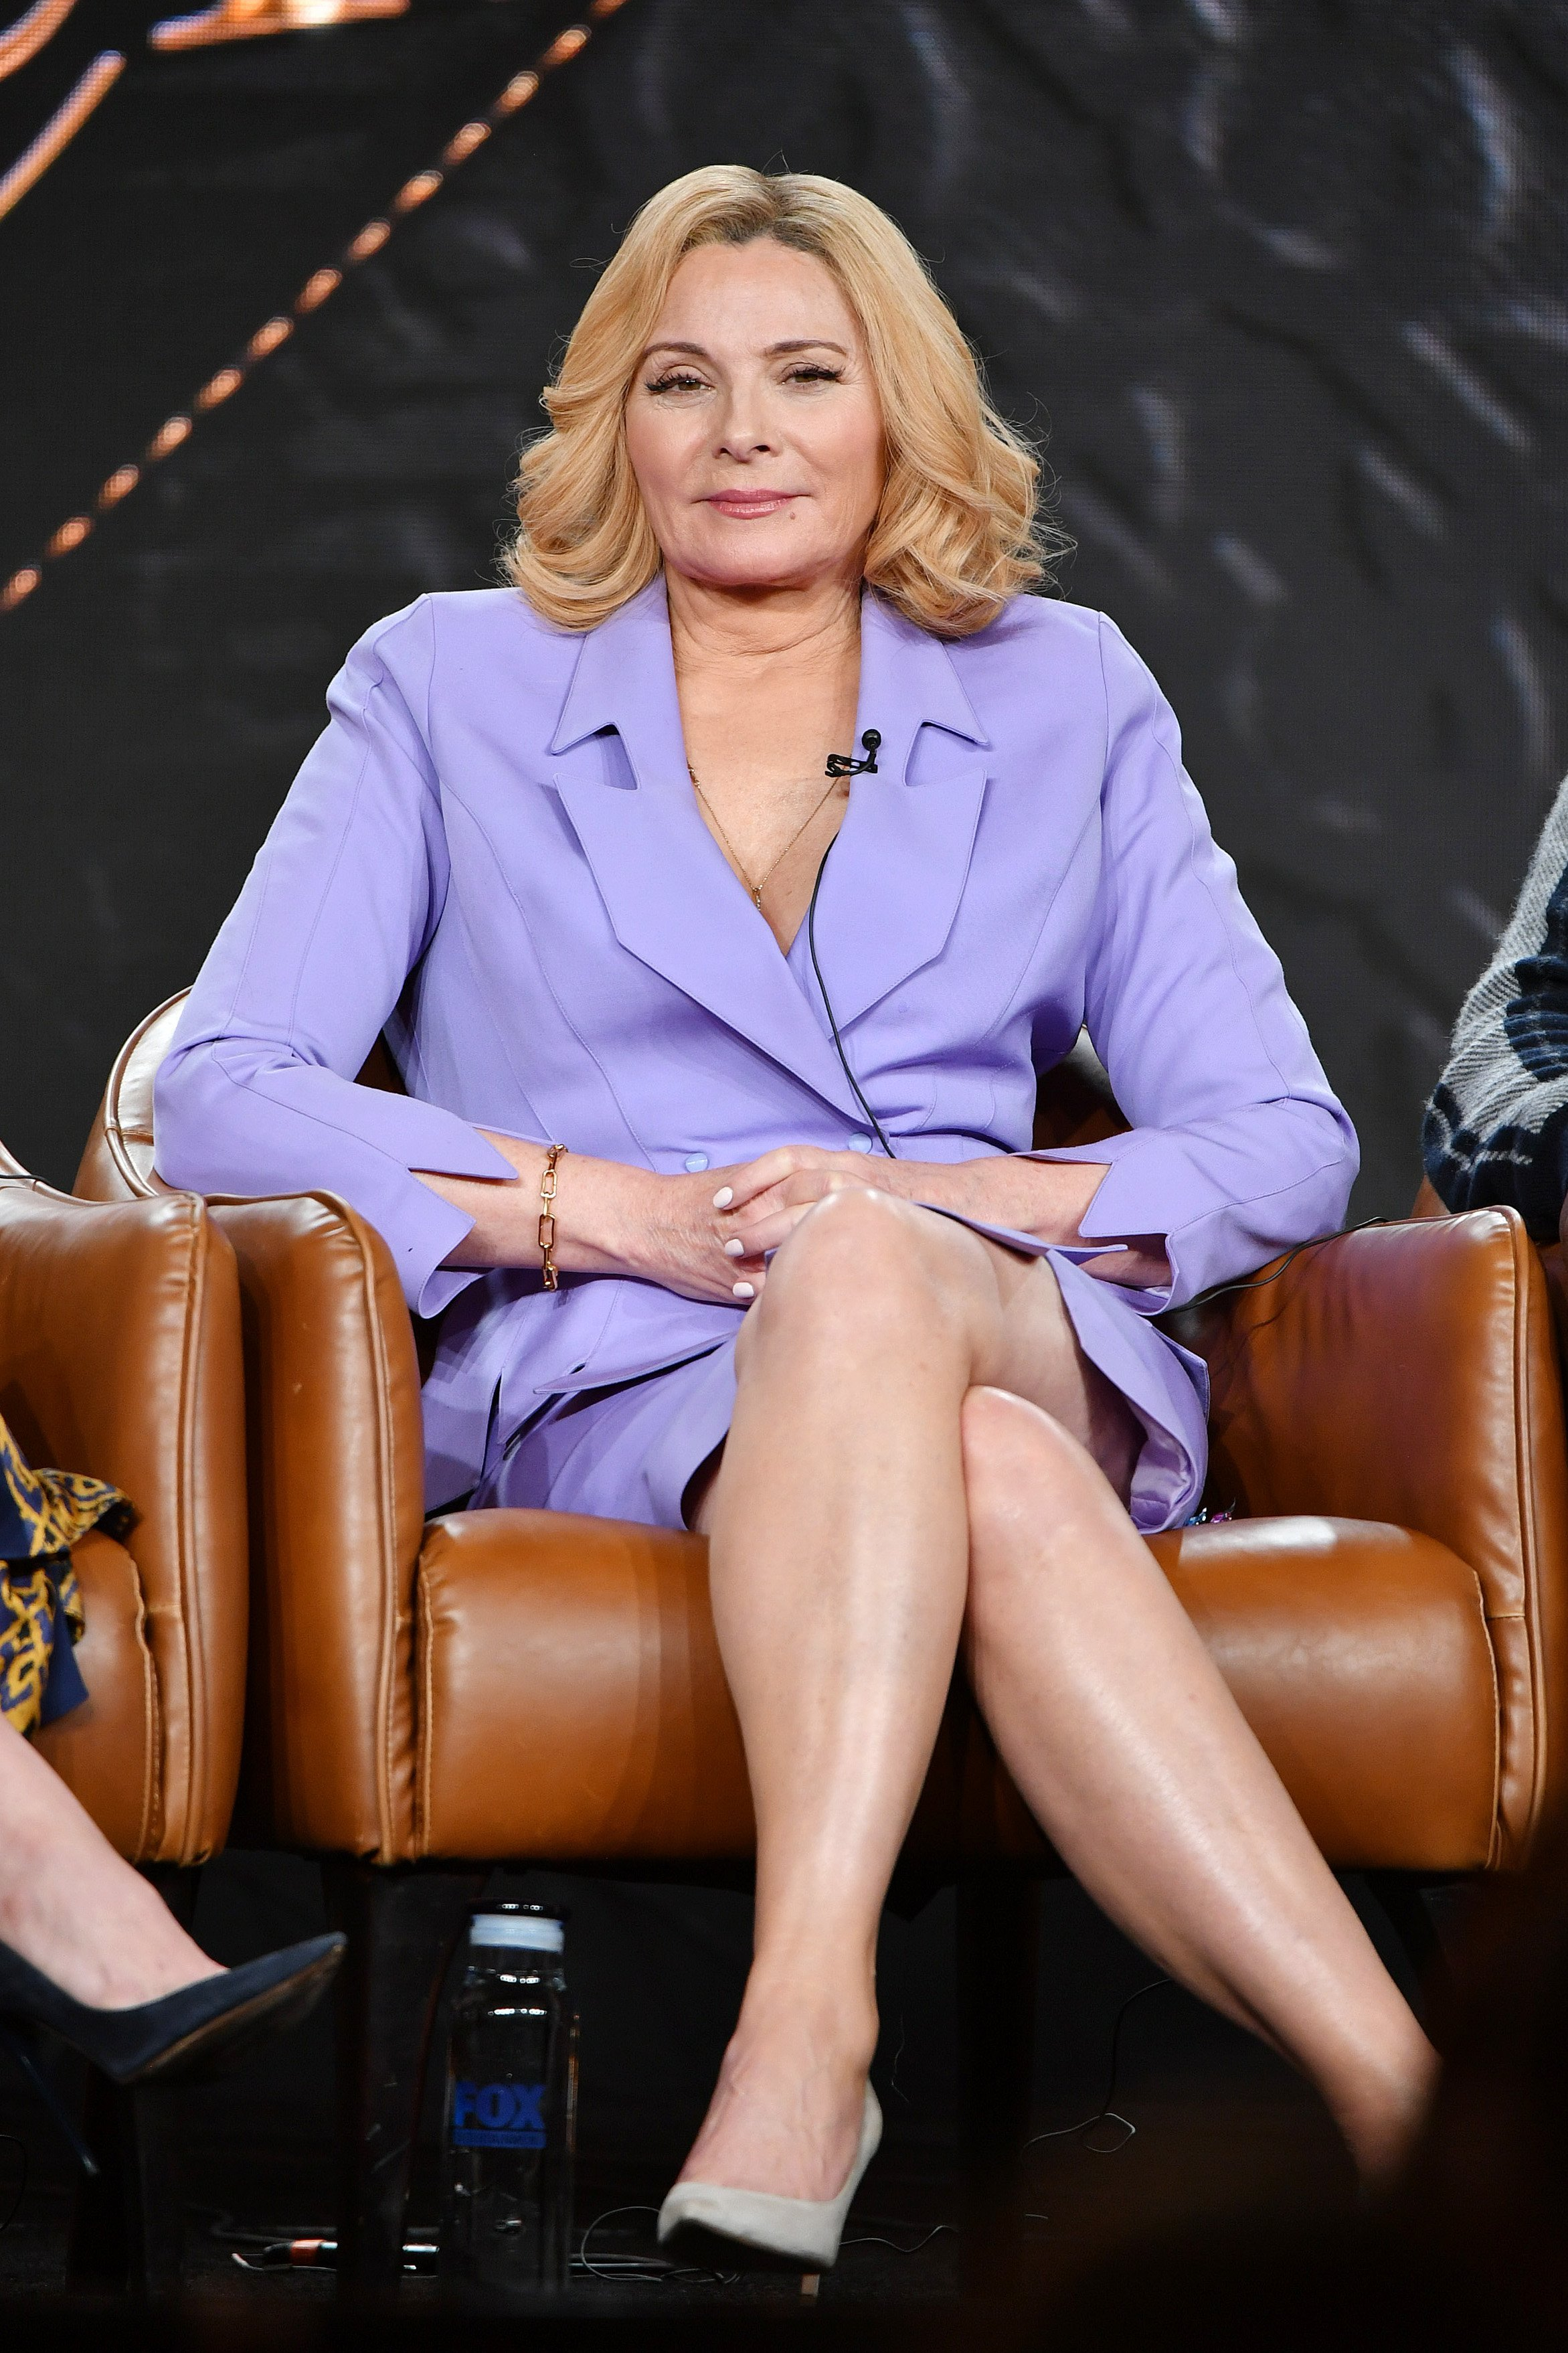 Kim Cattrall of 'Filthy Rich' speaks during the 2020 Winter TCA Press Tour at The Langham Huntington, Pasadena on January 07, 2020, in Pasadena, California. | Source: Getty Images.